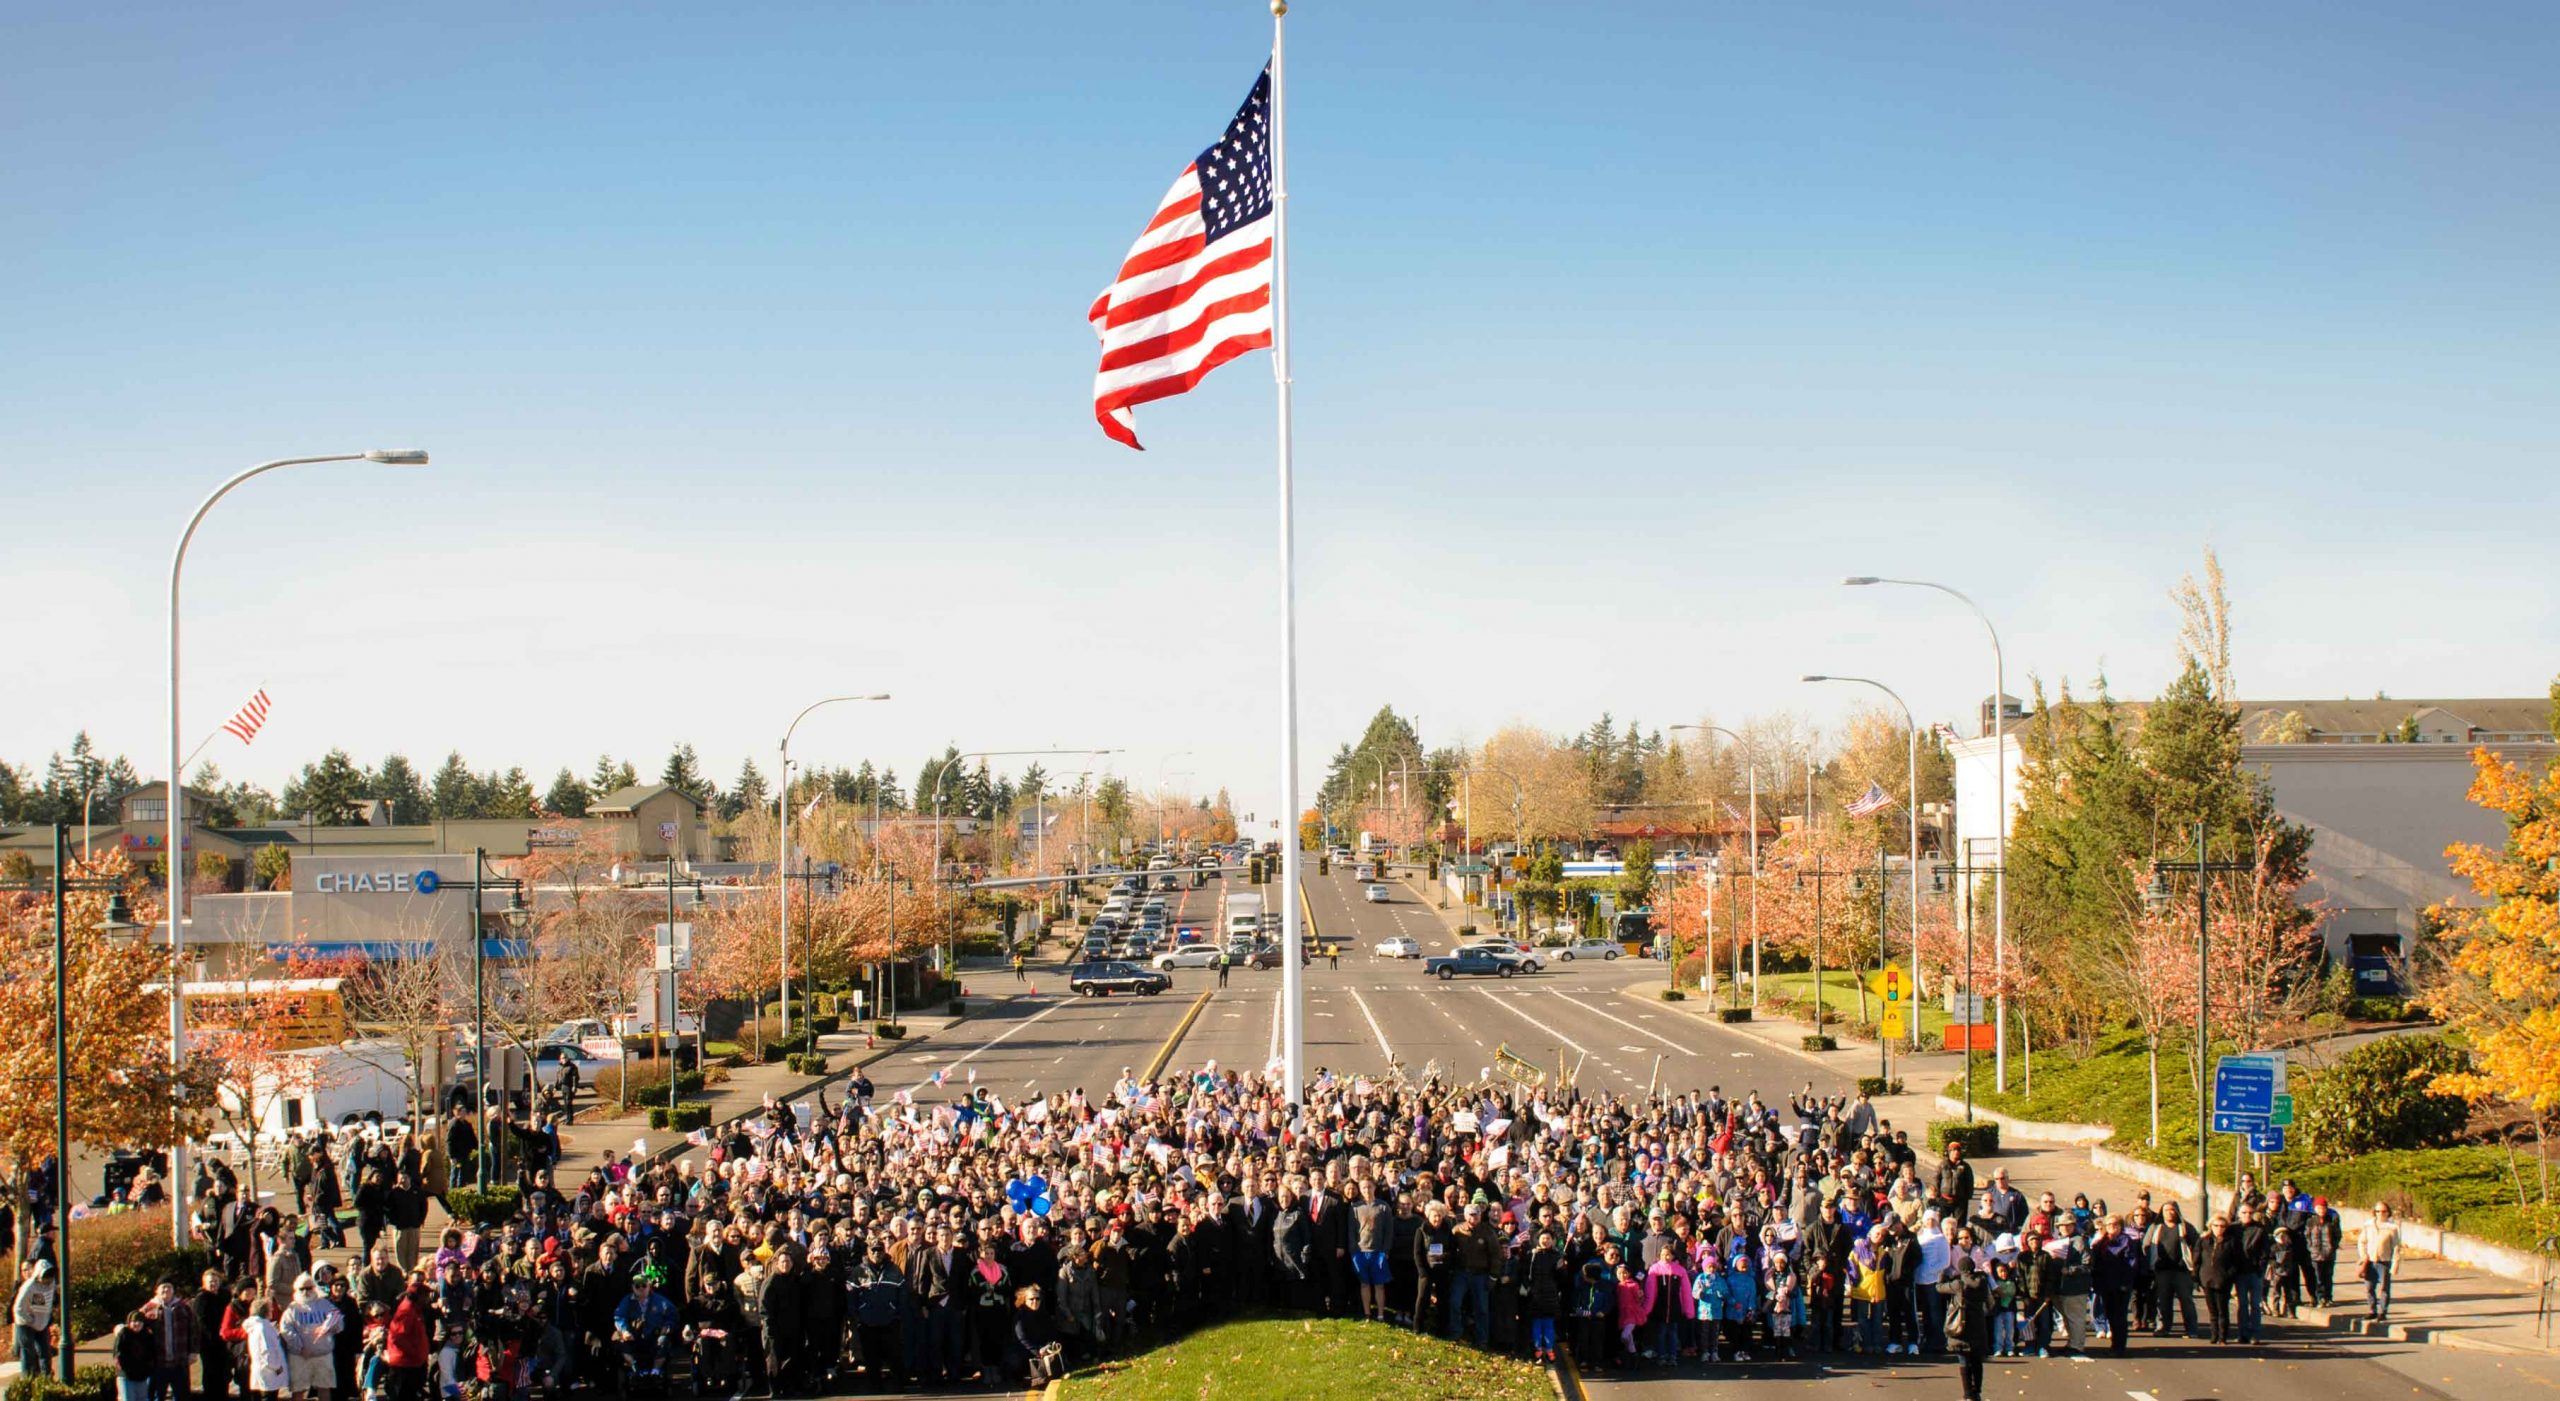 Federal Way Washington Raising of the Flag